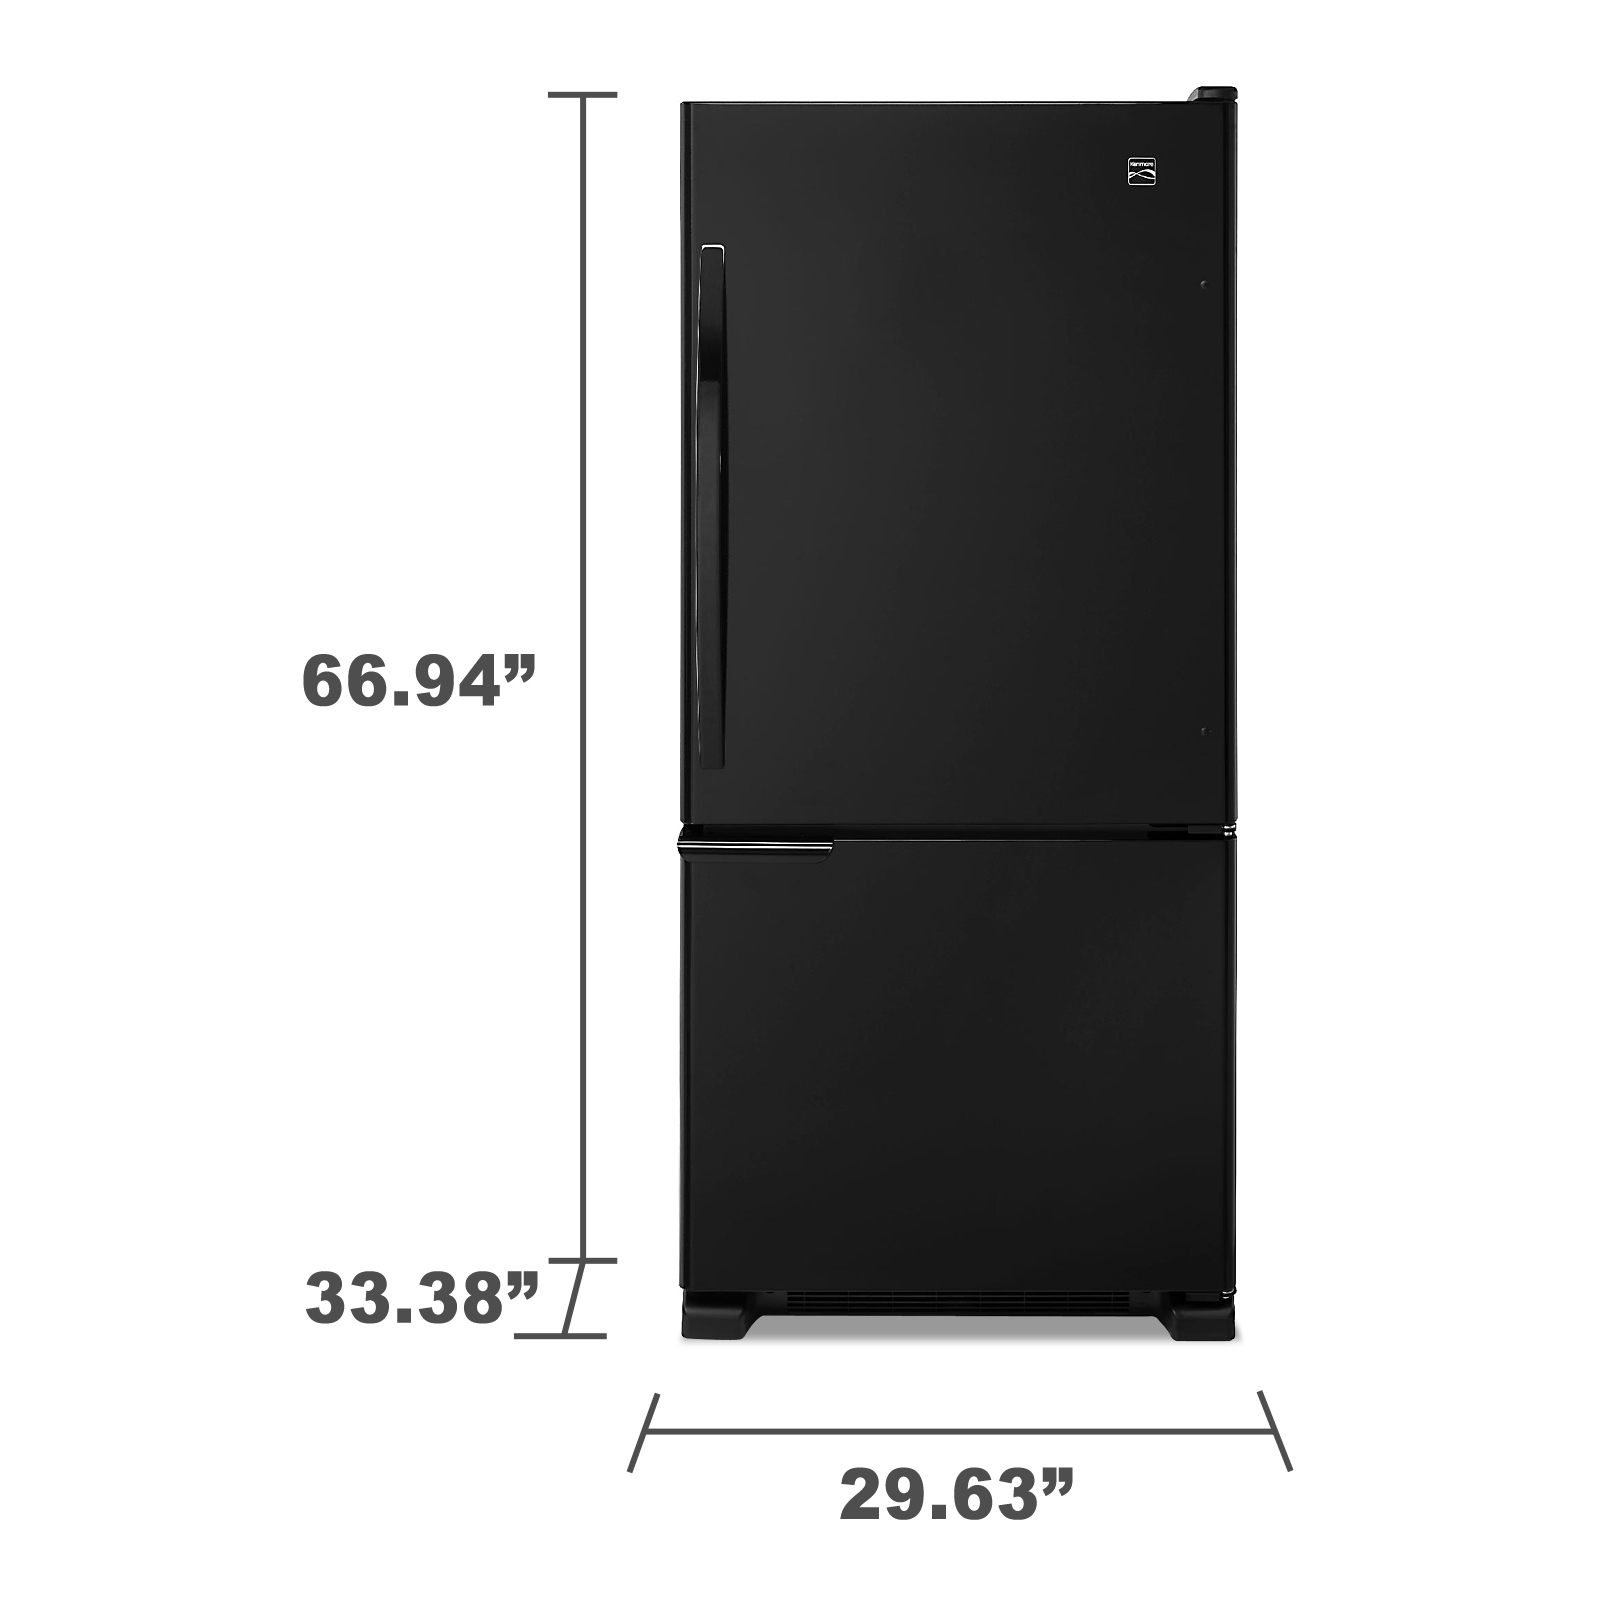 Kenmore 69319 19 cu. ft. Bottom-Freezer Refrigerator - Black